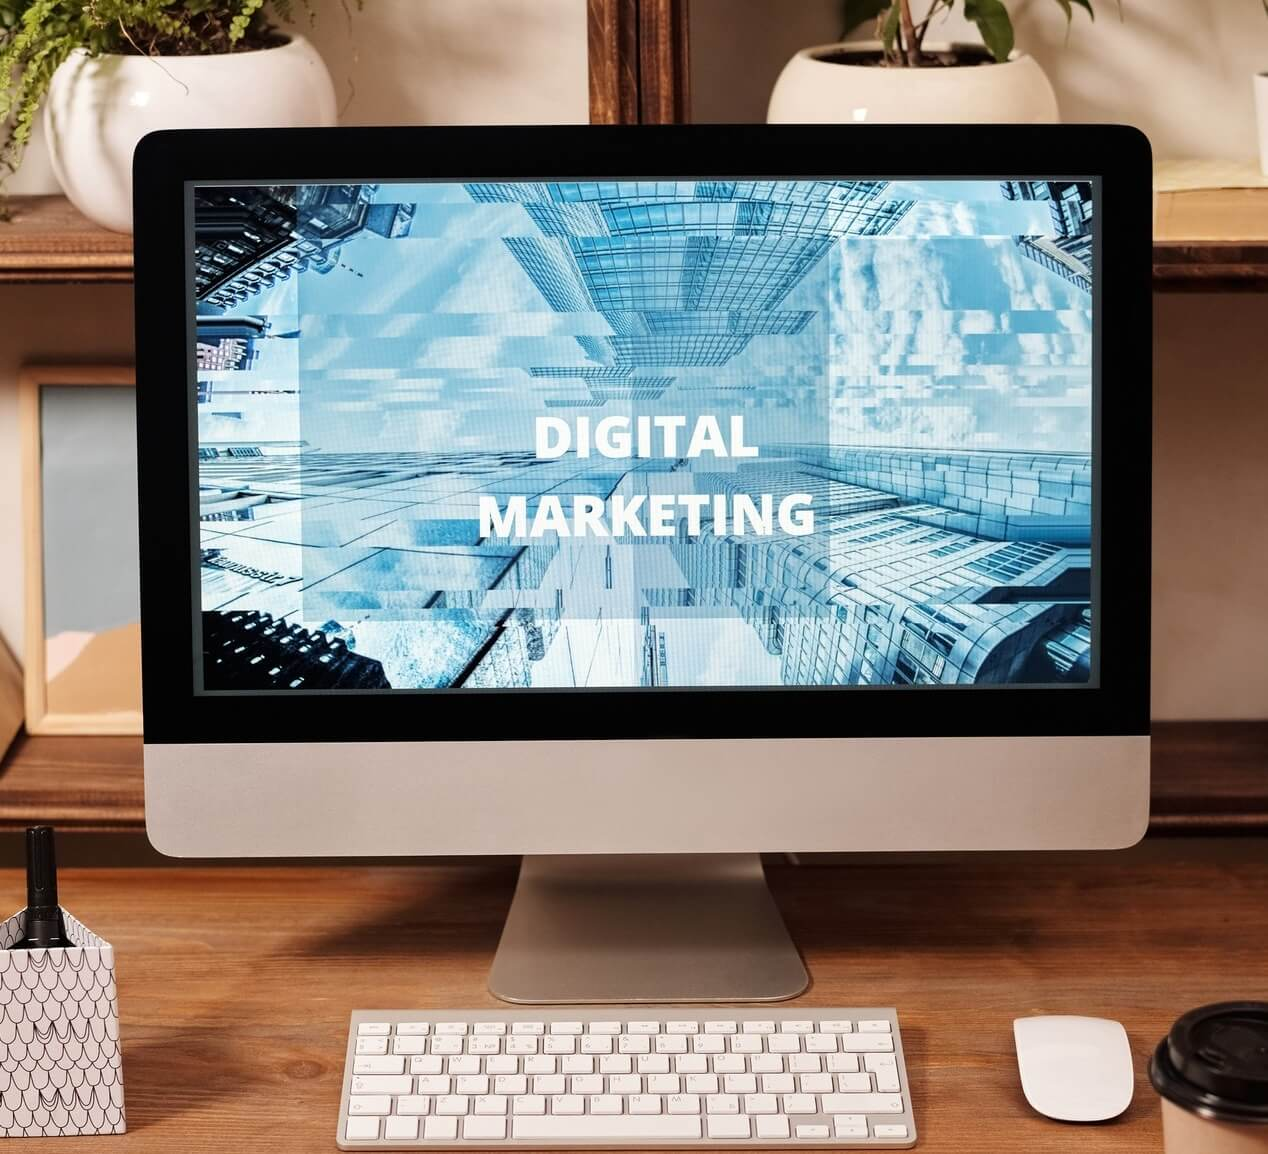 What is Digital Marketing? Types, Benefits, and Strategies